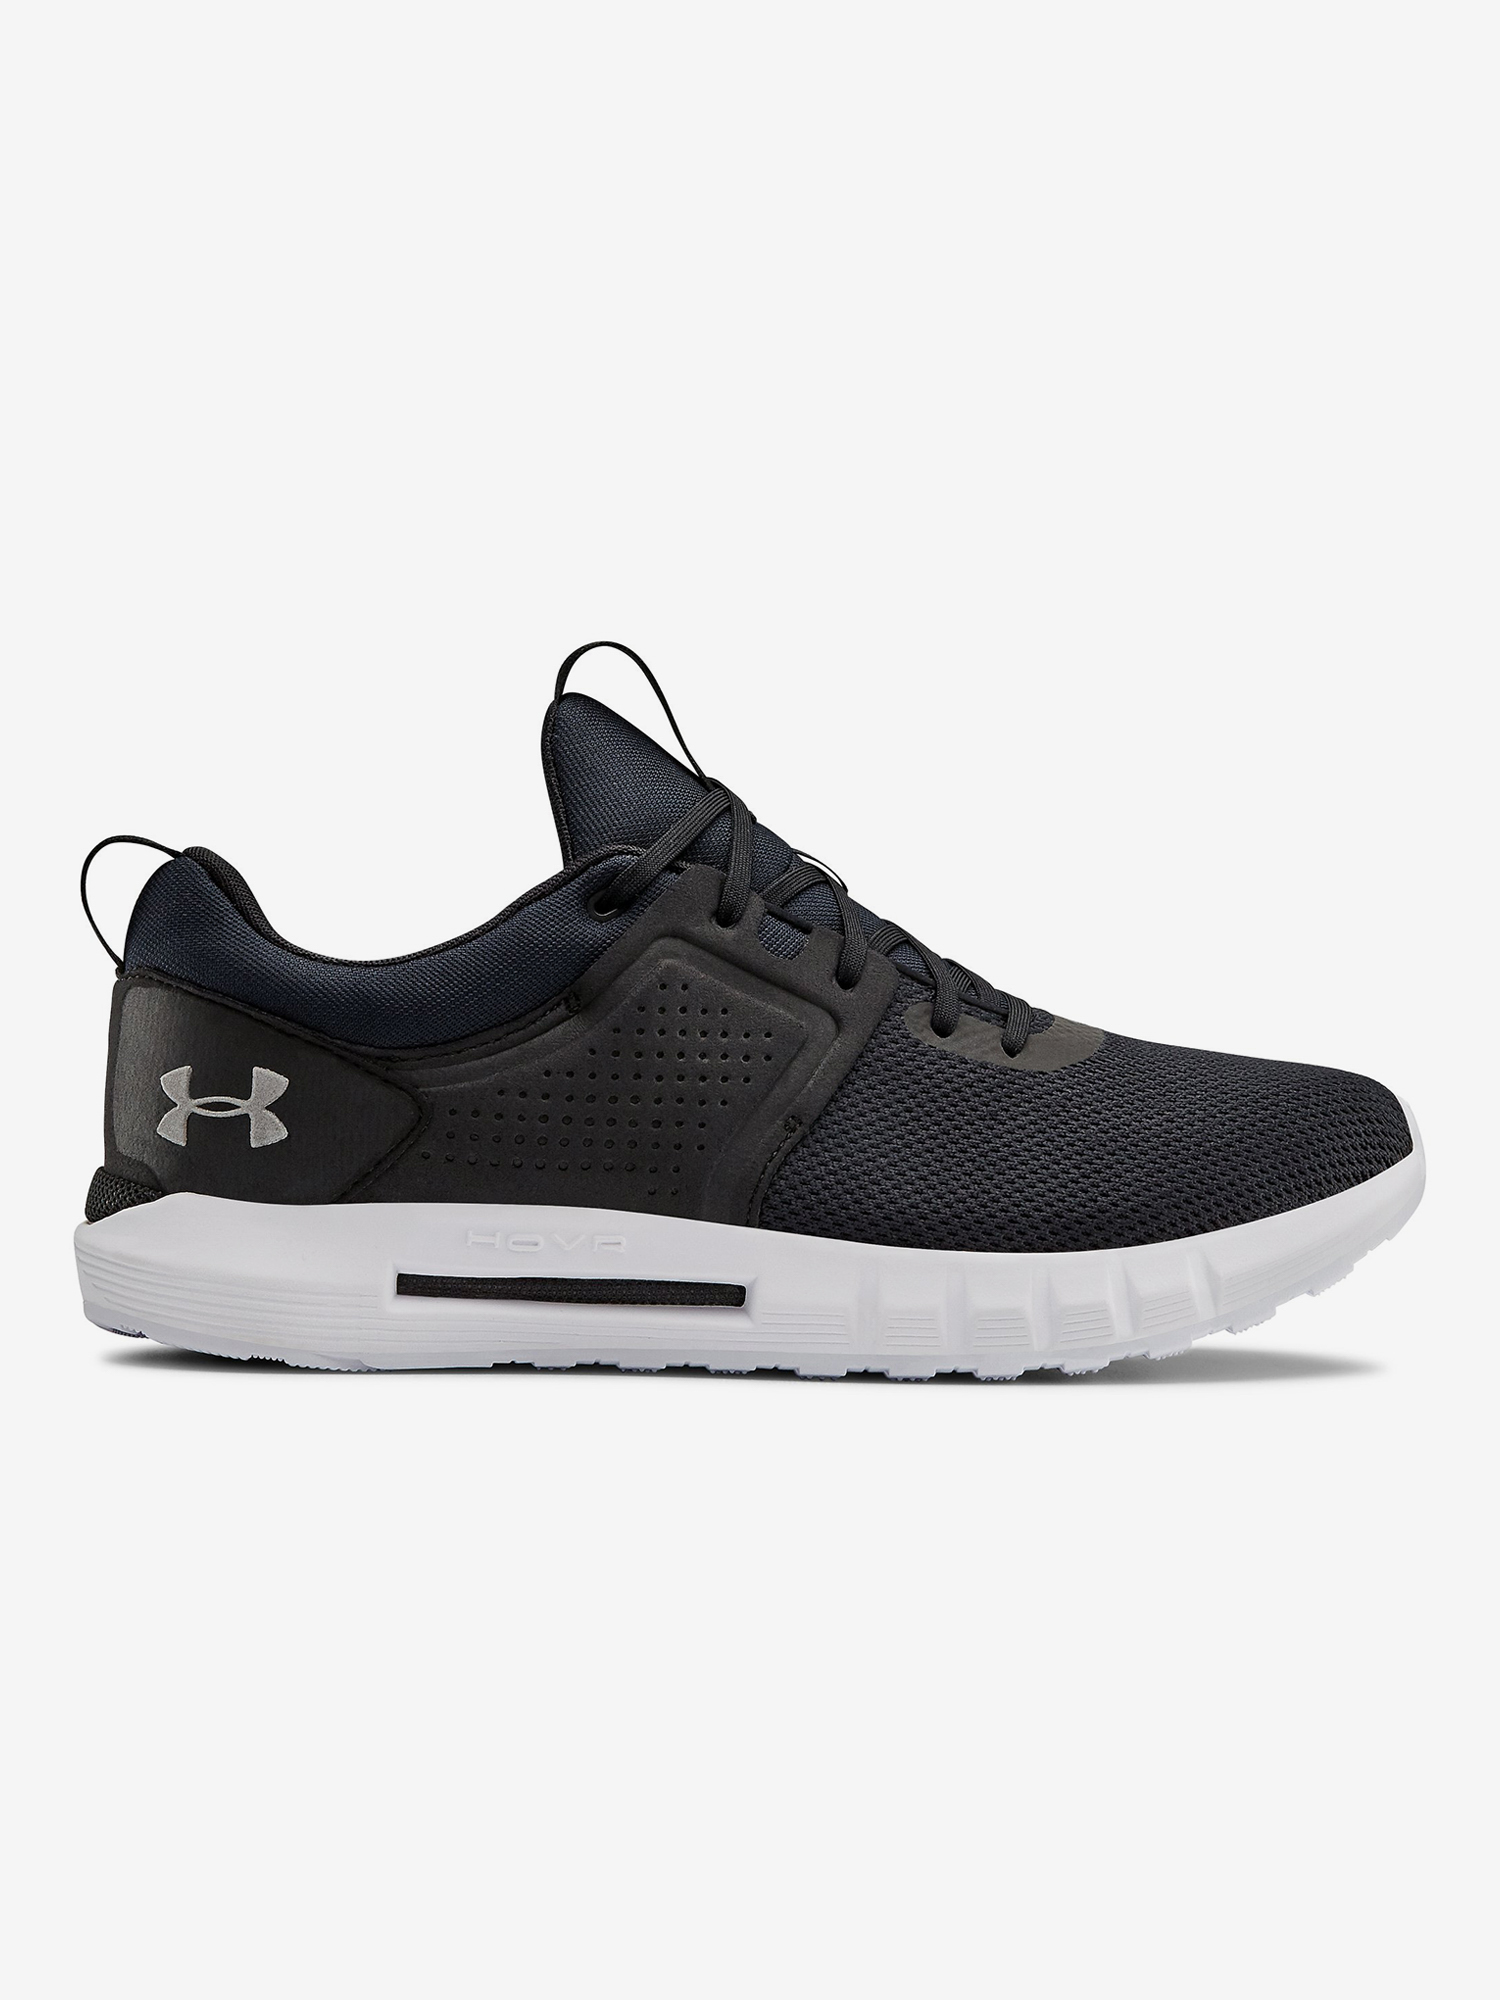 Boty Under Armour Hovr Ctw-Blk